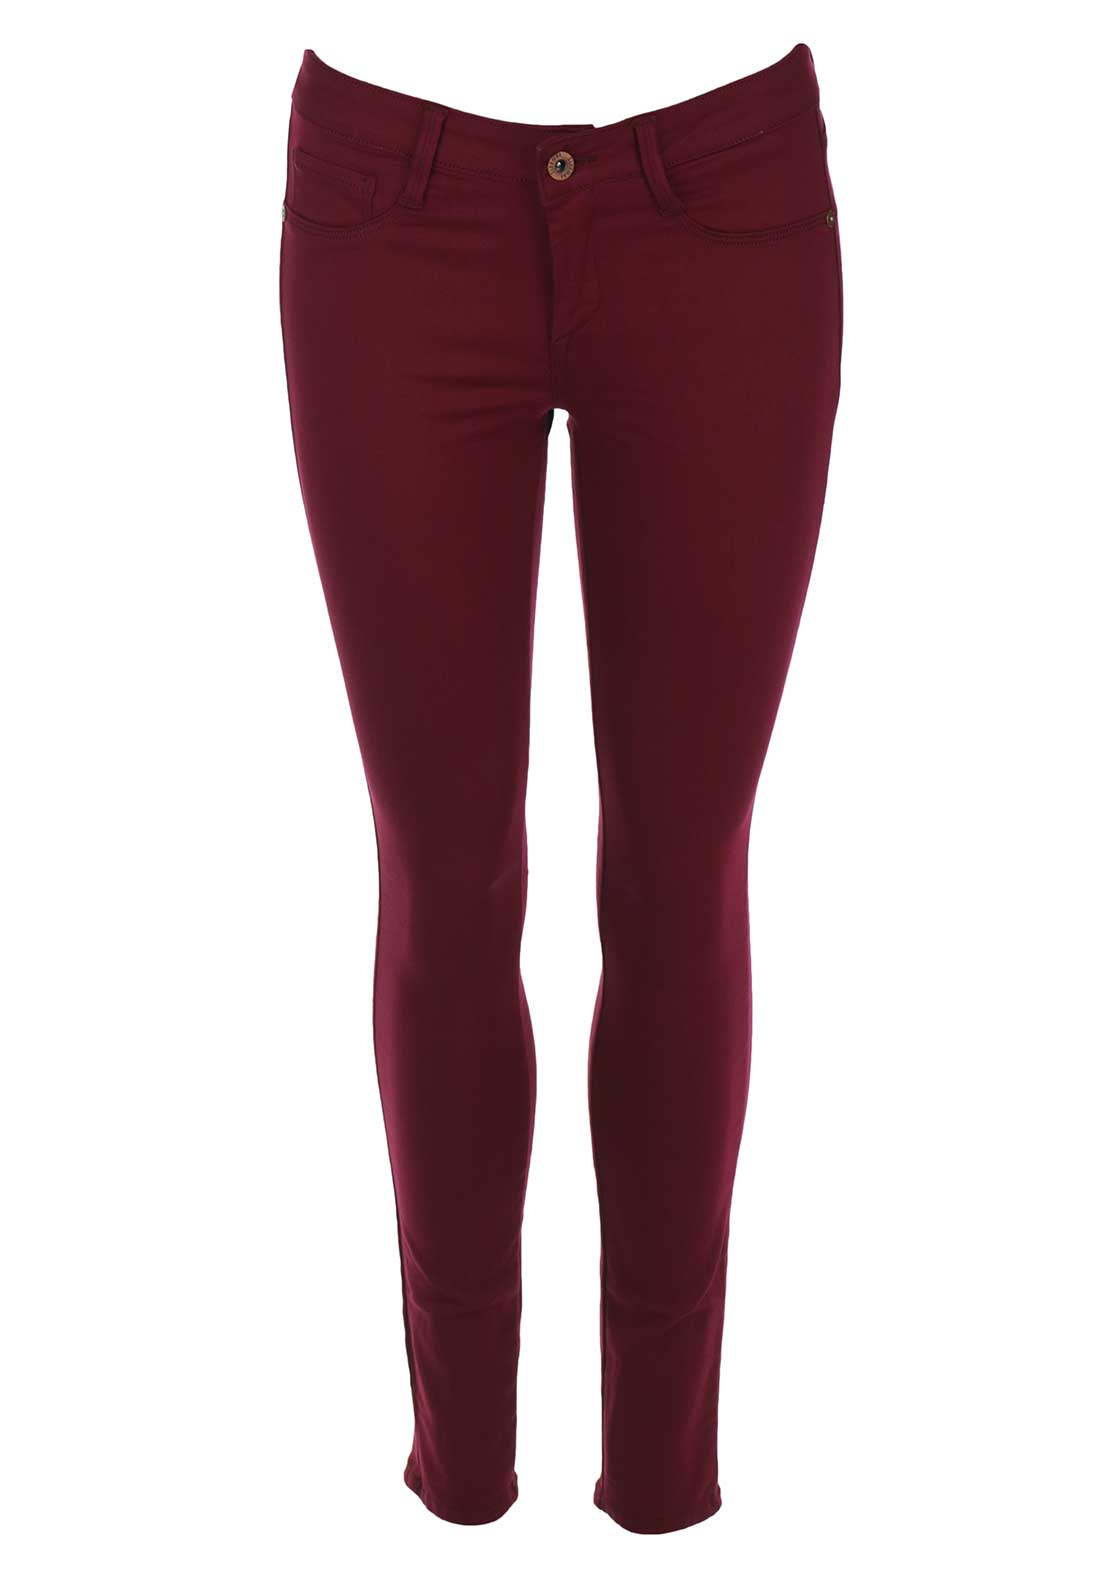 Tiffosi Womens One Size Fits All Original Skinny Jeans, Dark Red